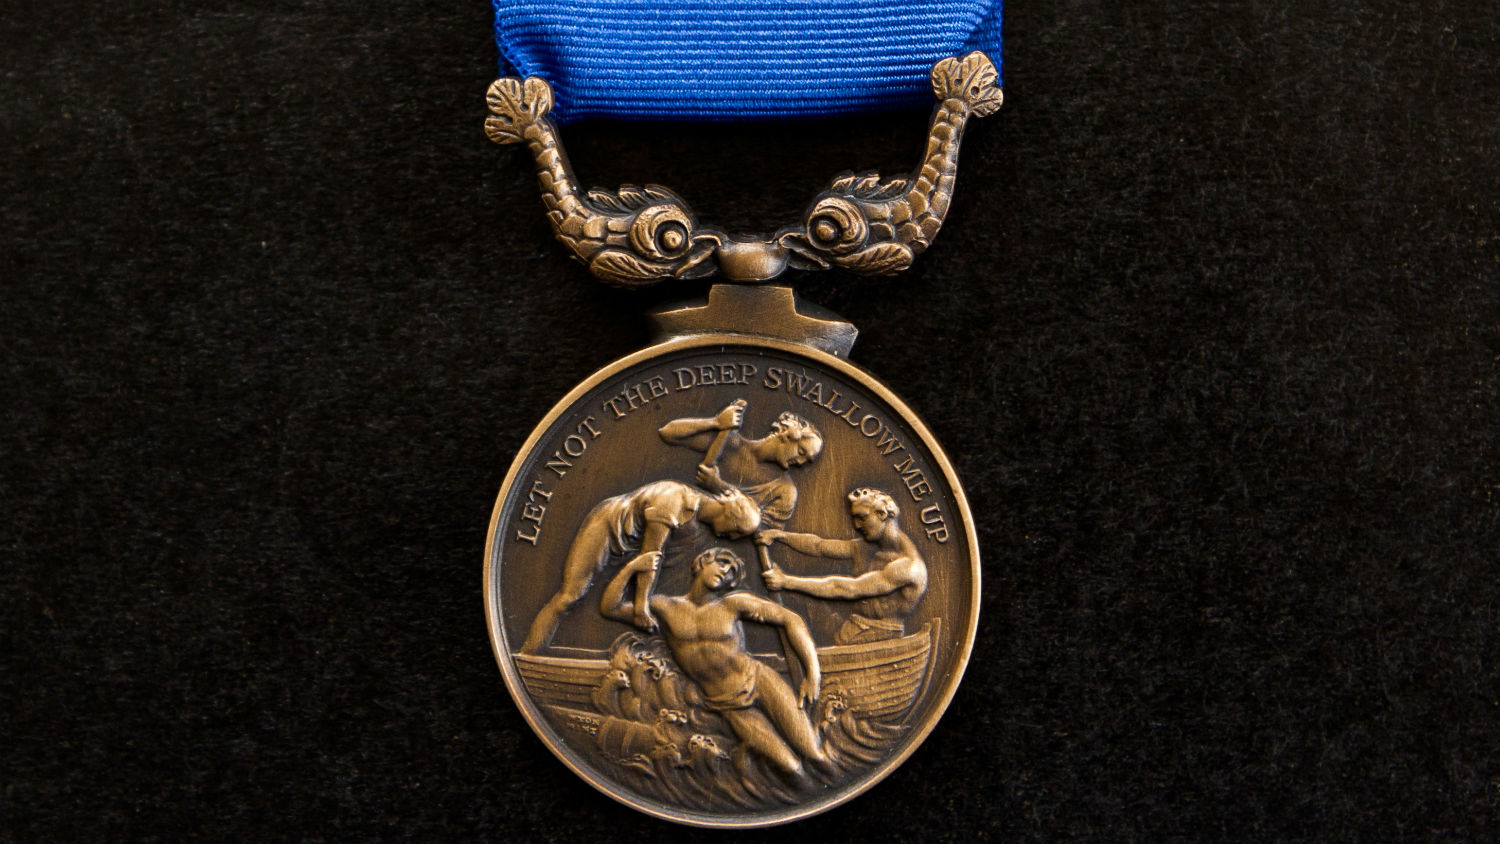 An RNLI Bronze Medal for Gallantry, engraved with the motto: 'let not the deep swallow me up', from Psalm 69:15